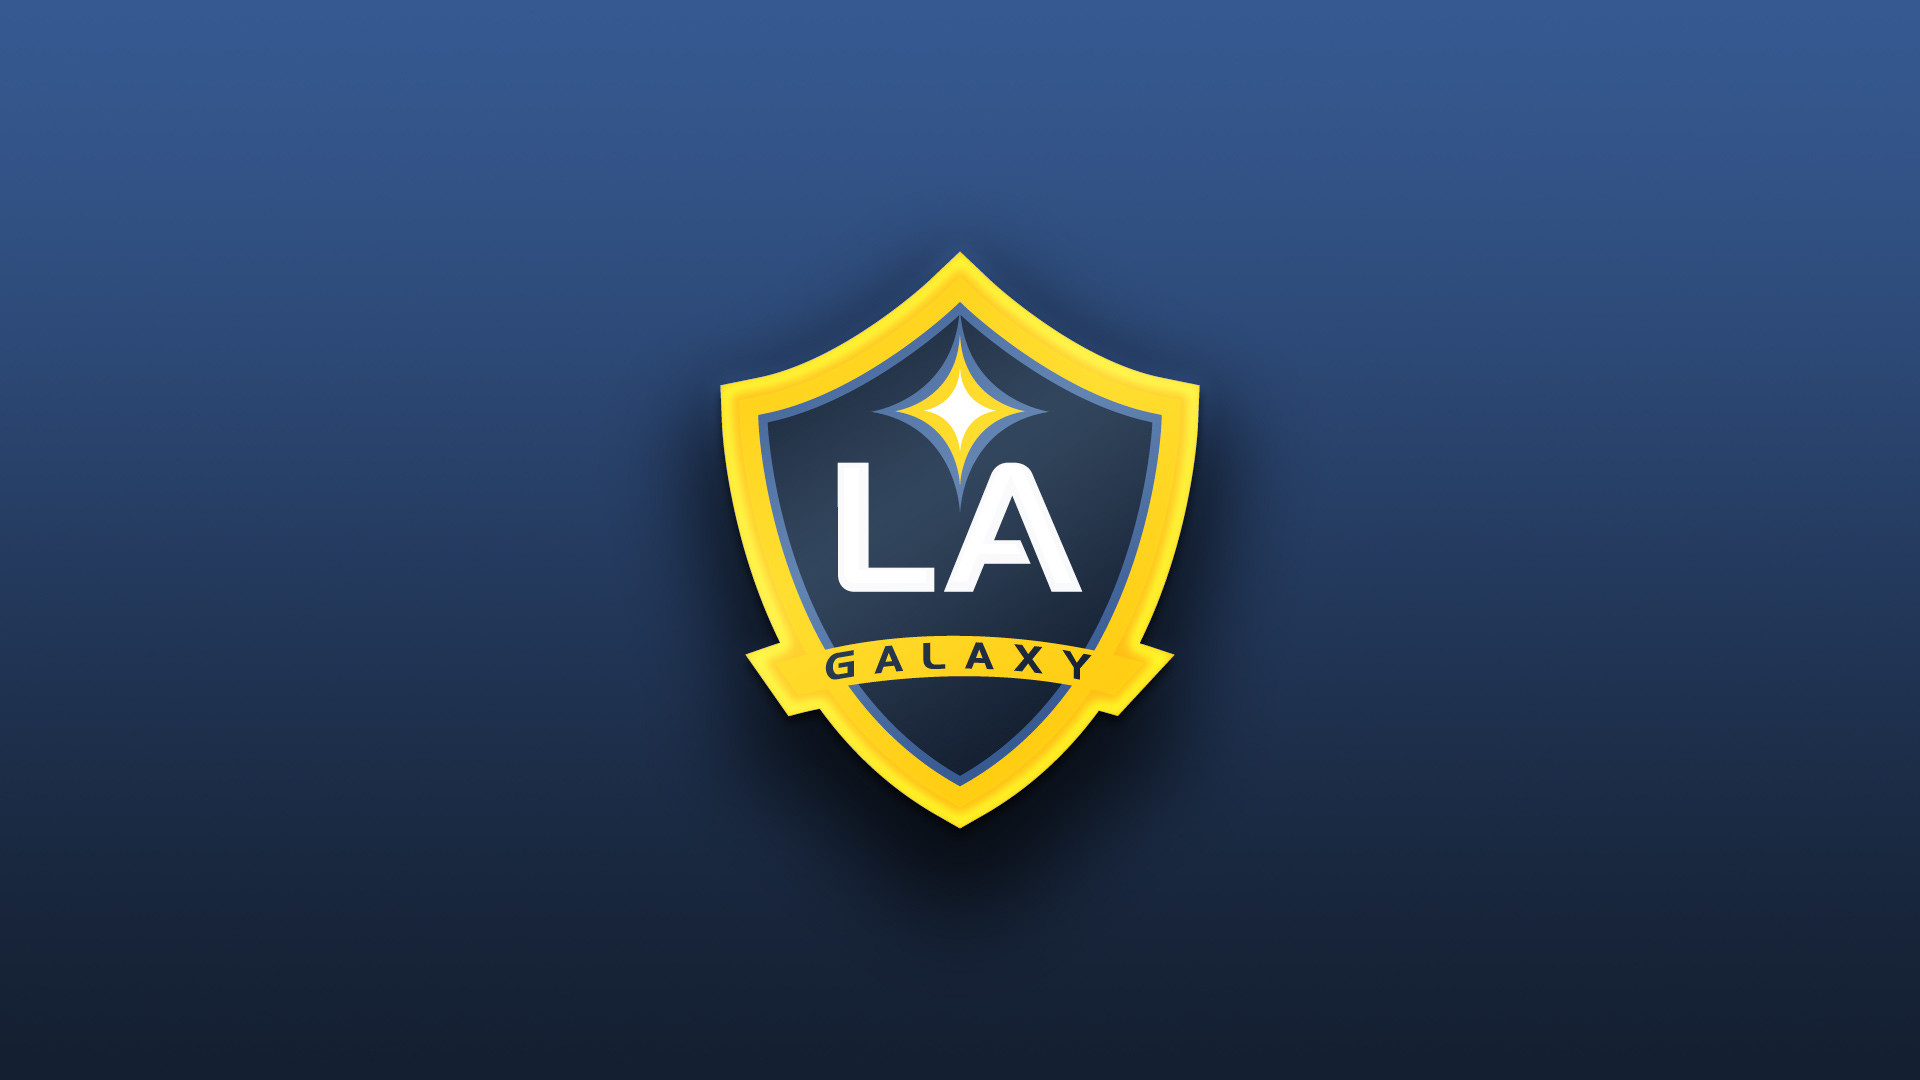 Res: 1920x1080, Los Angeles Galaxy Wallpaper